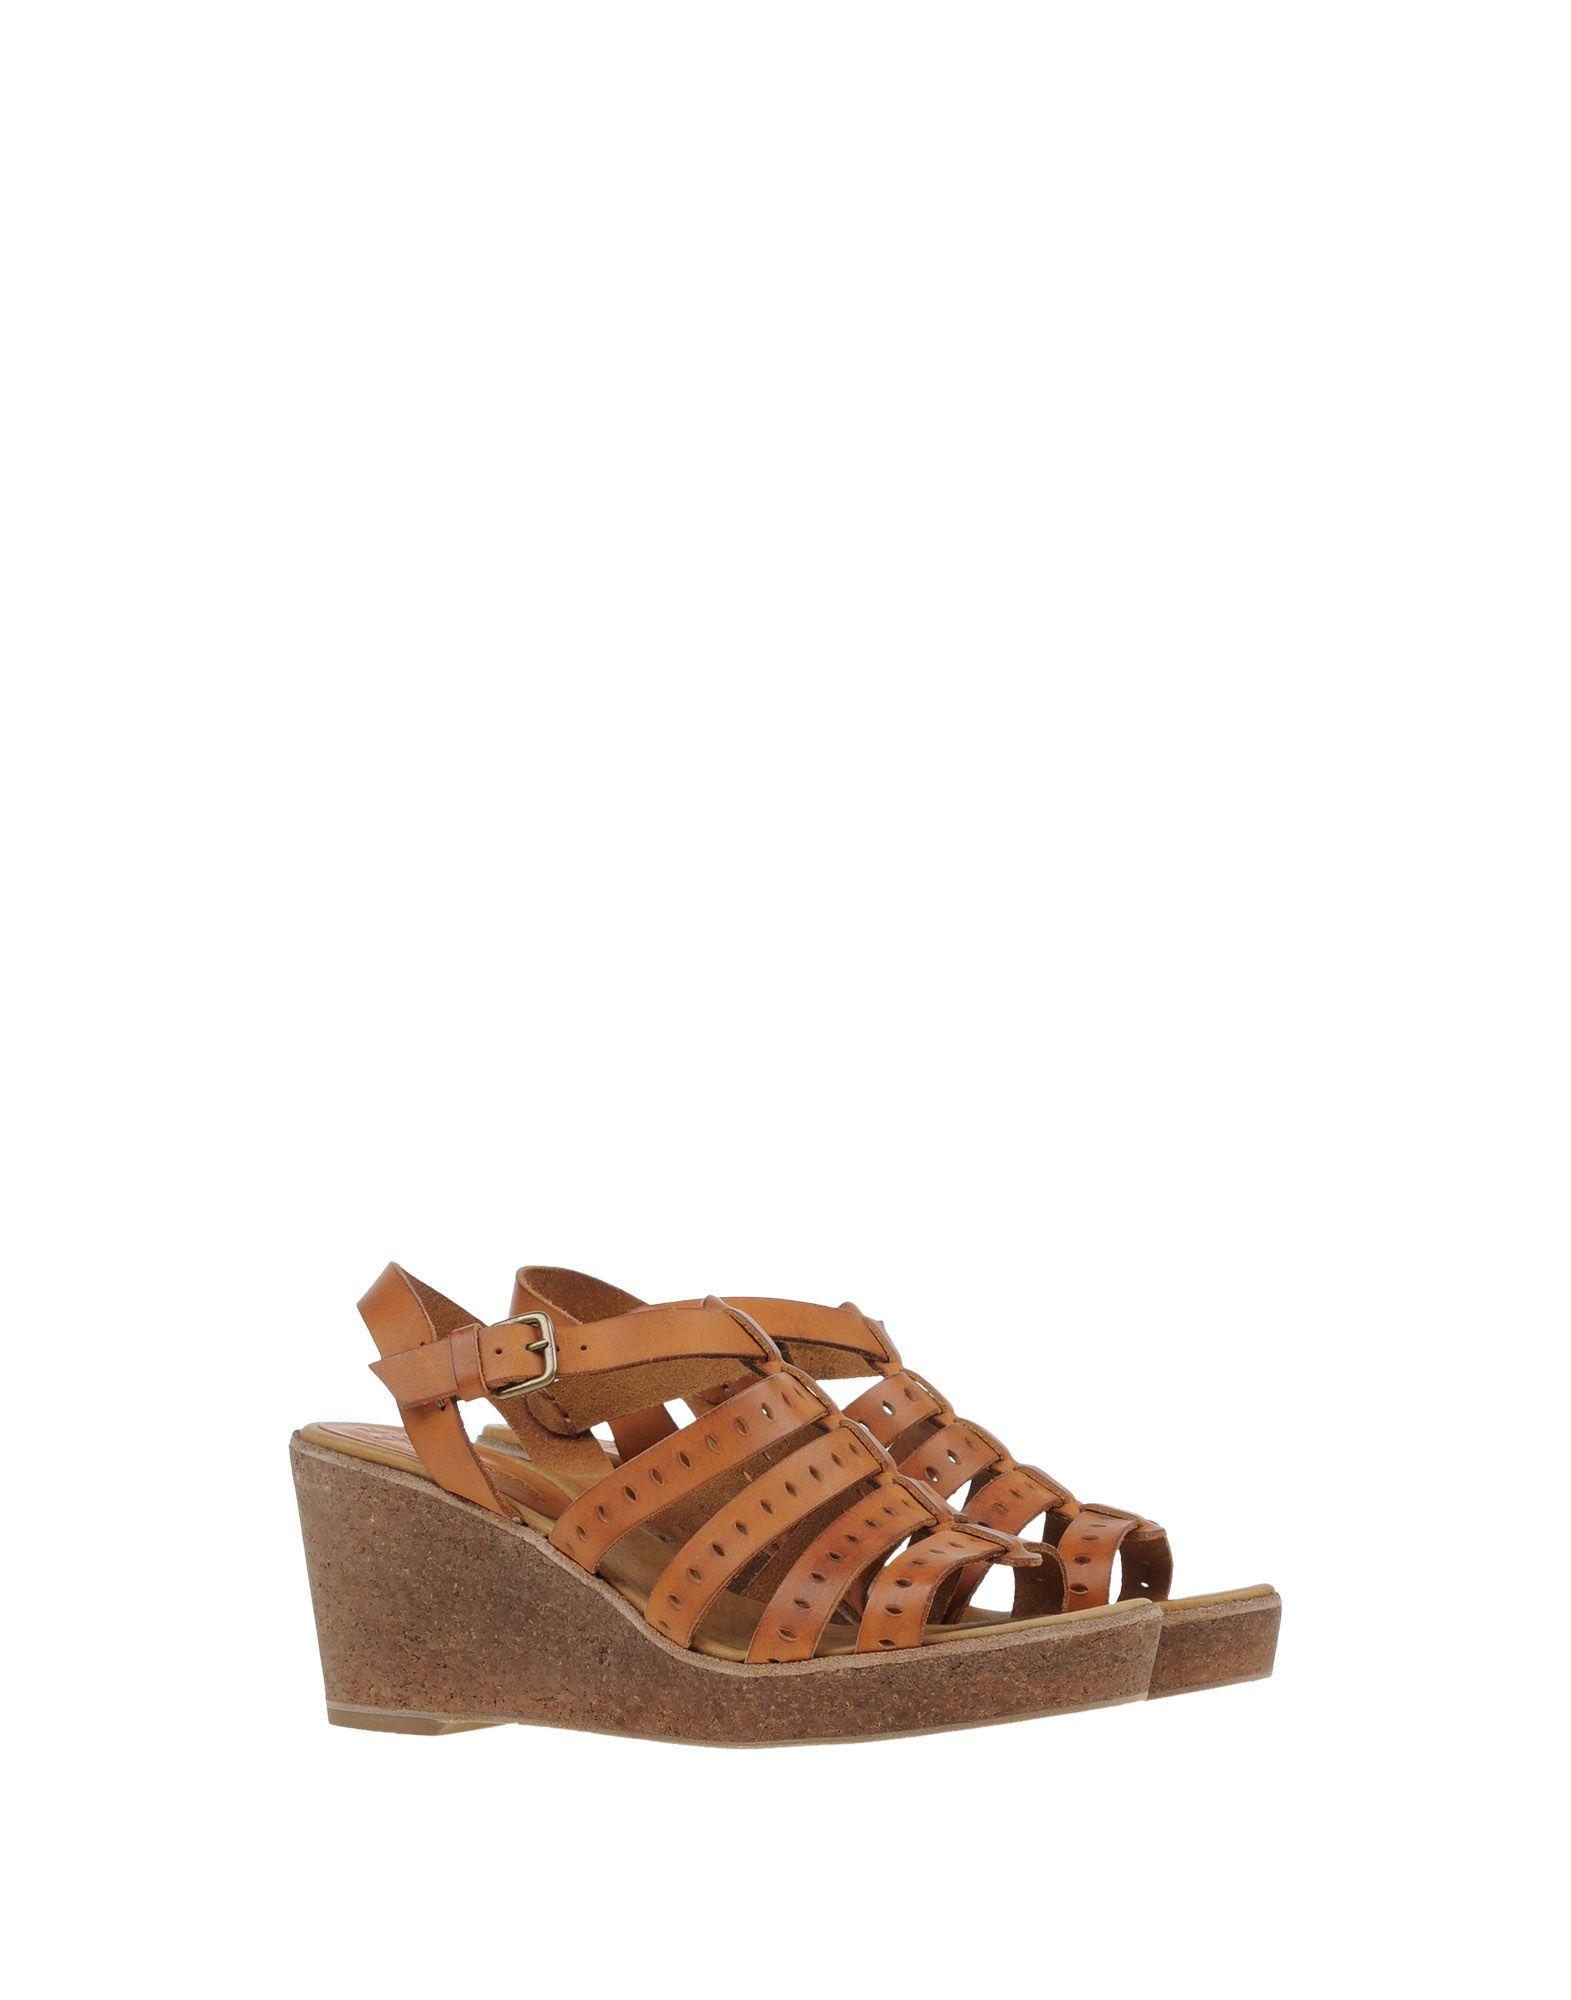 Sandales N.D.C. Made By Hand Femme - Sandales N.D.C. Made By Hand sur